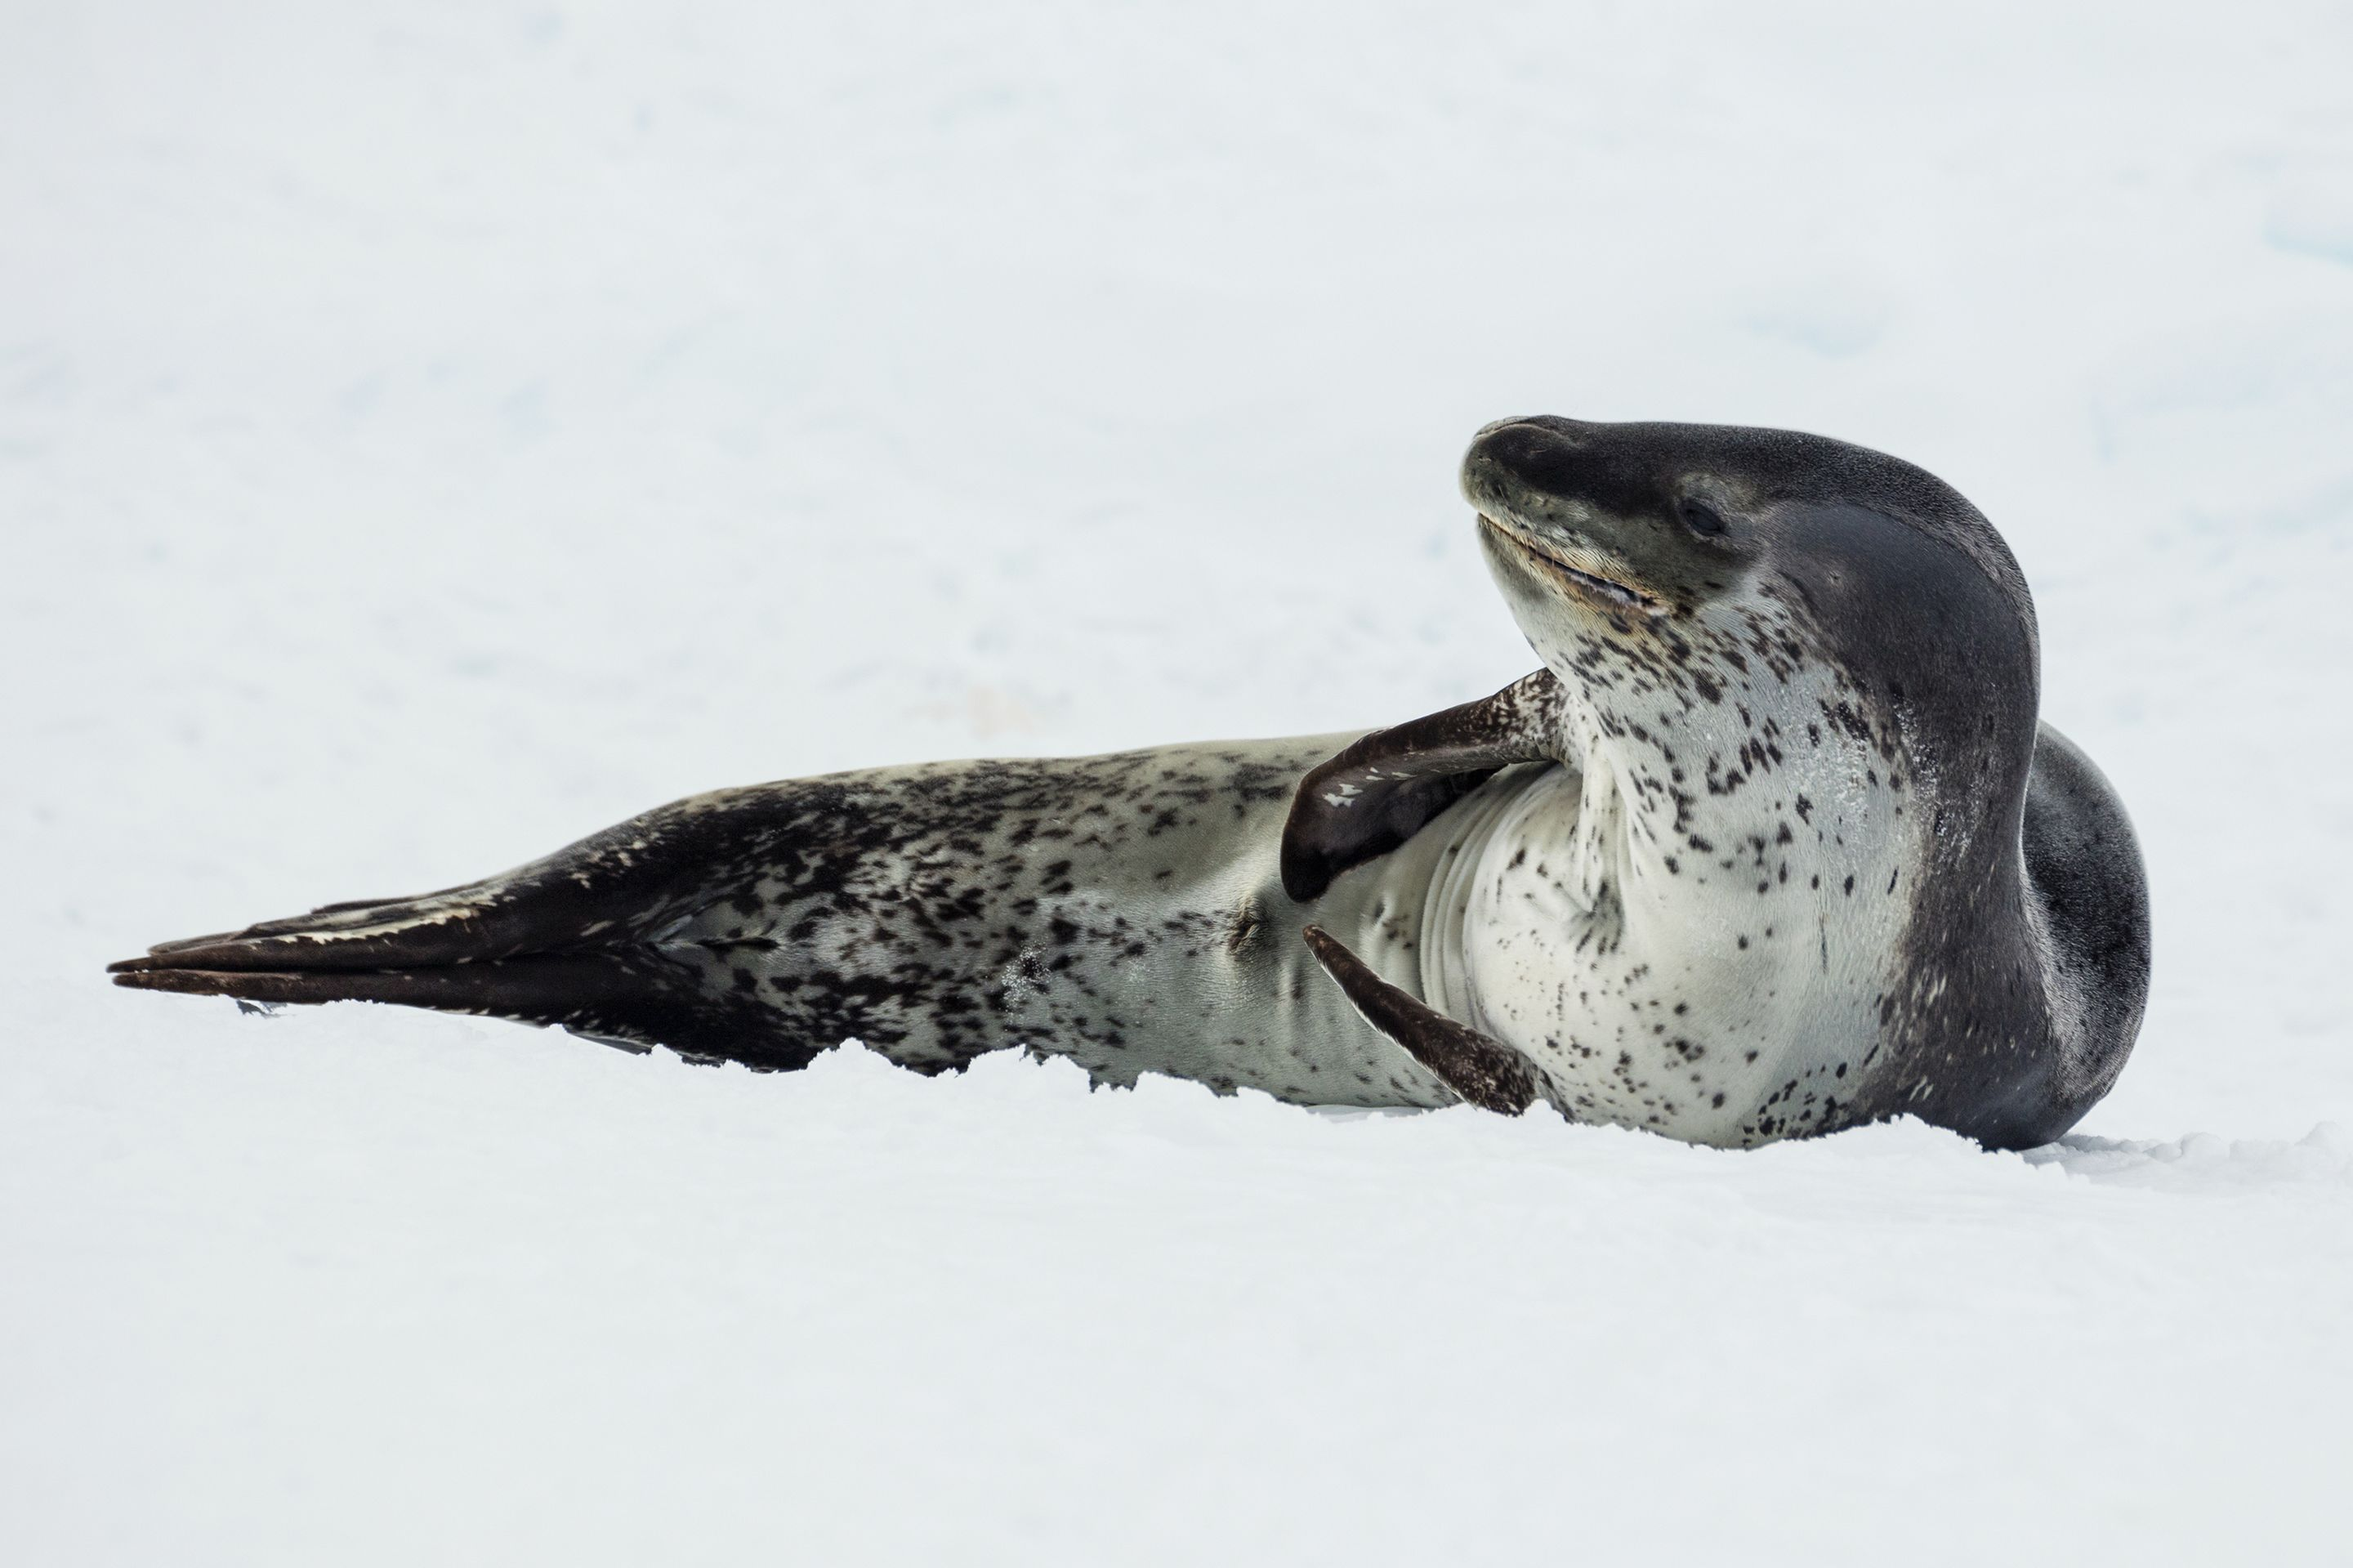 EMBED 2 Antarctic Sound 2016 Brown BluffLeopard seal Hydrurga leptonyx 04